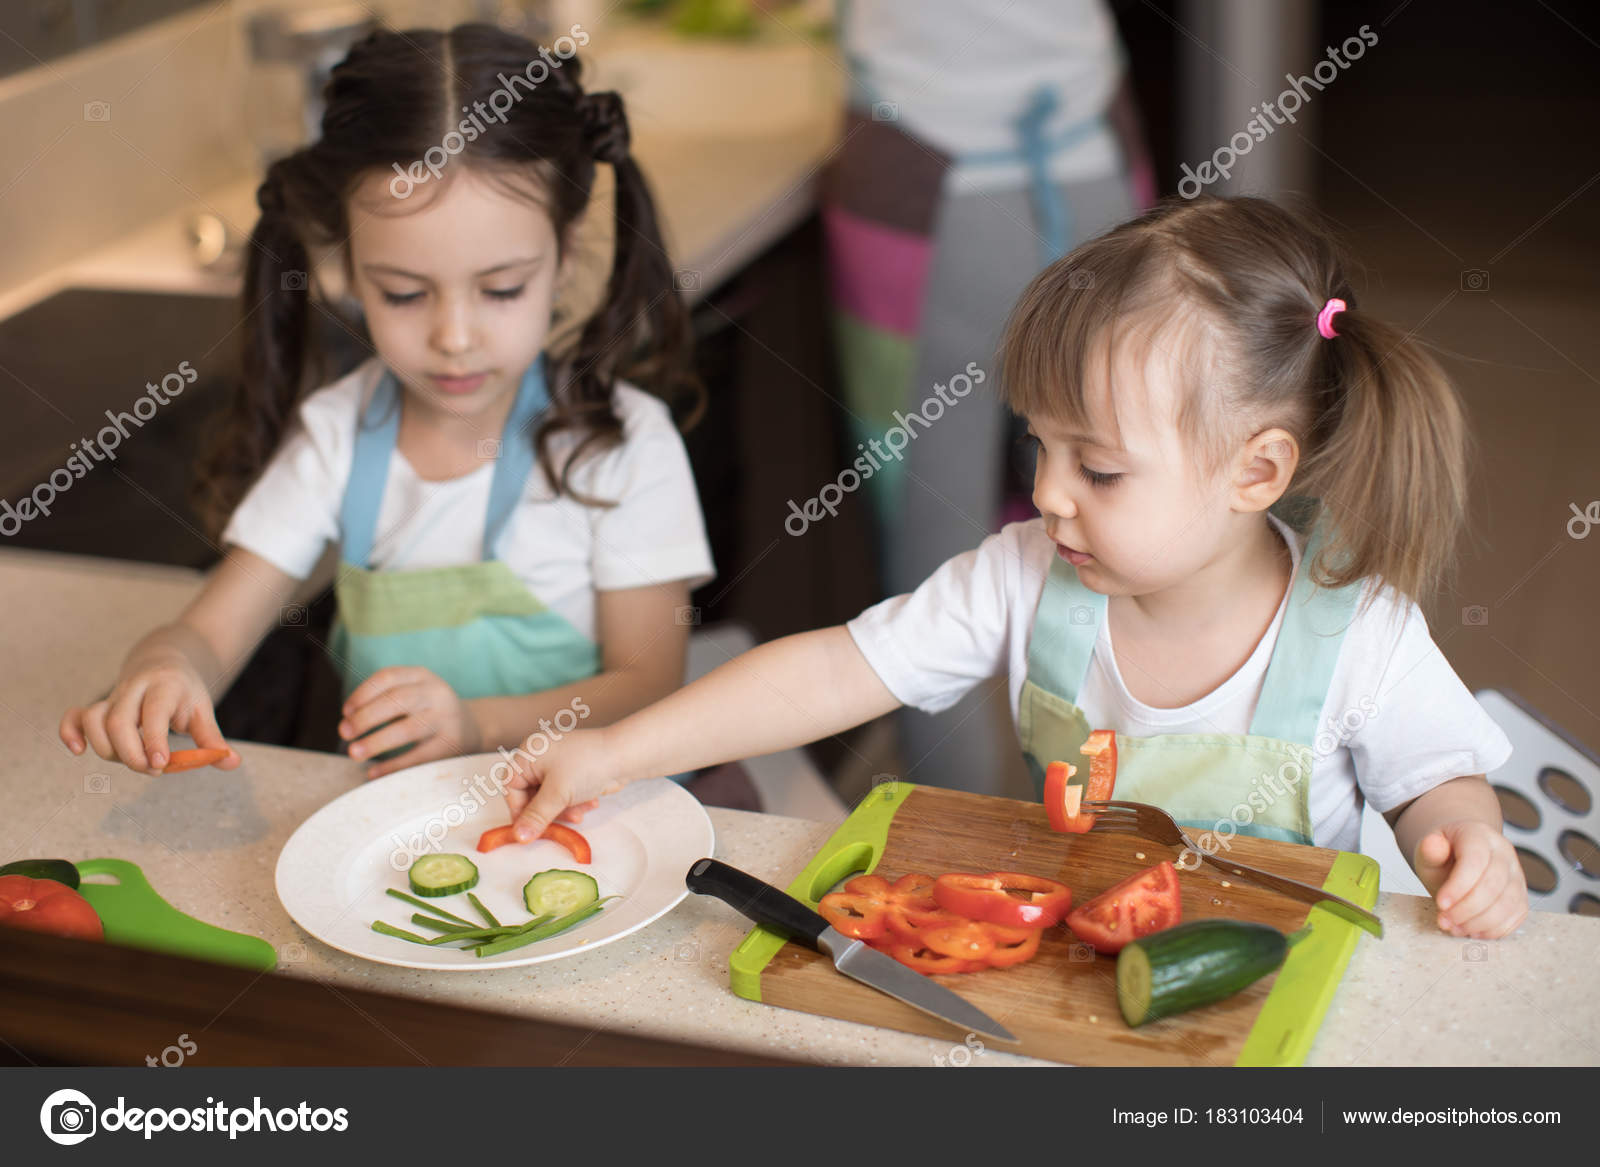 cute children helping mother at kitchen. adorable sisters making